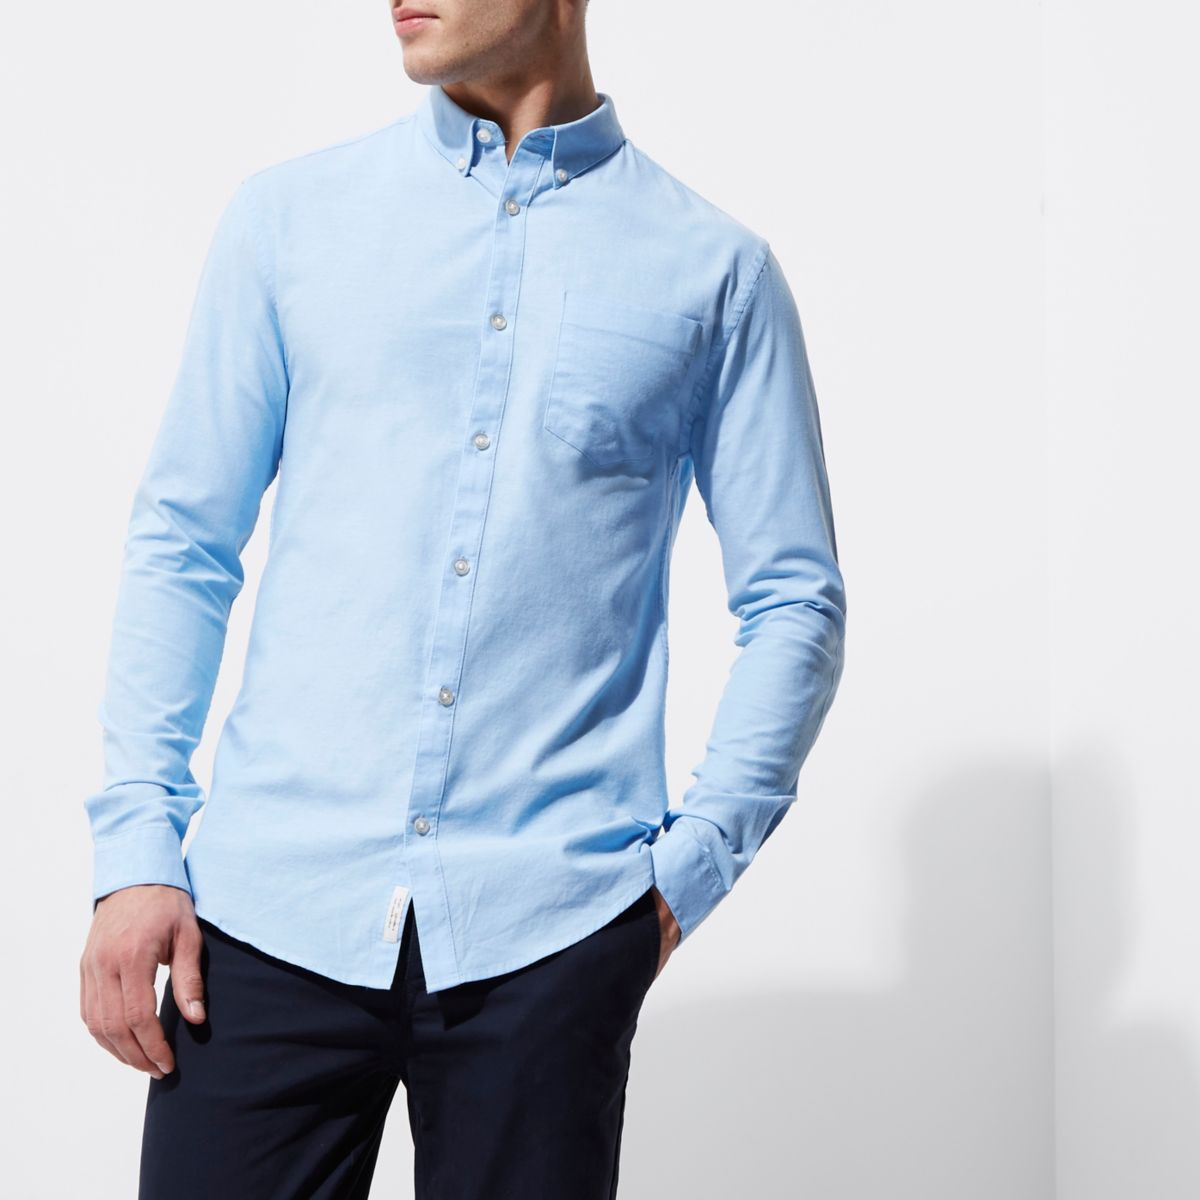 light blue muscle fit oxford shirt shirts sale men